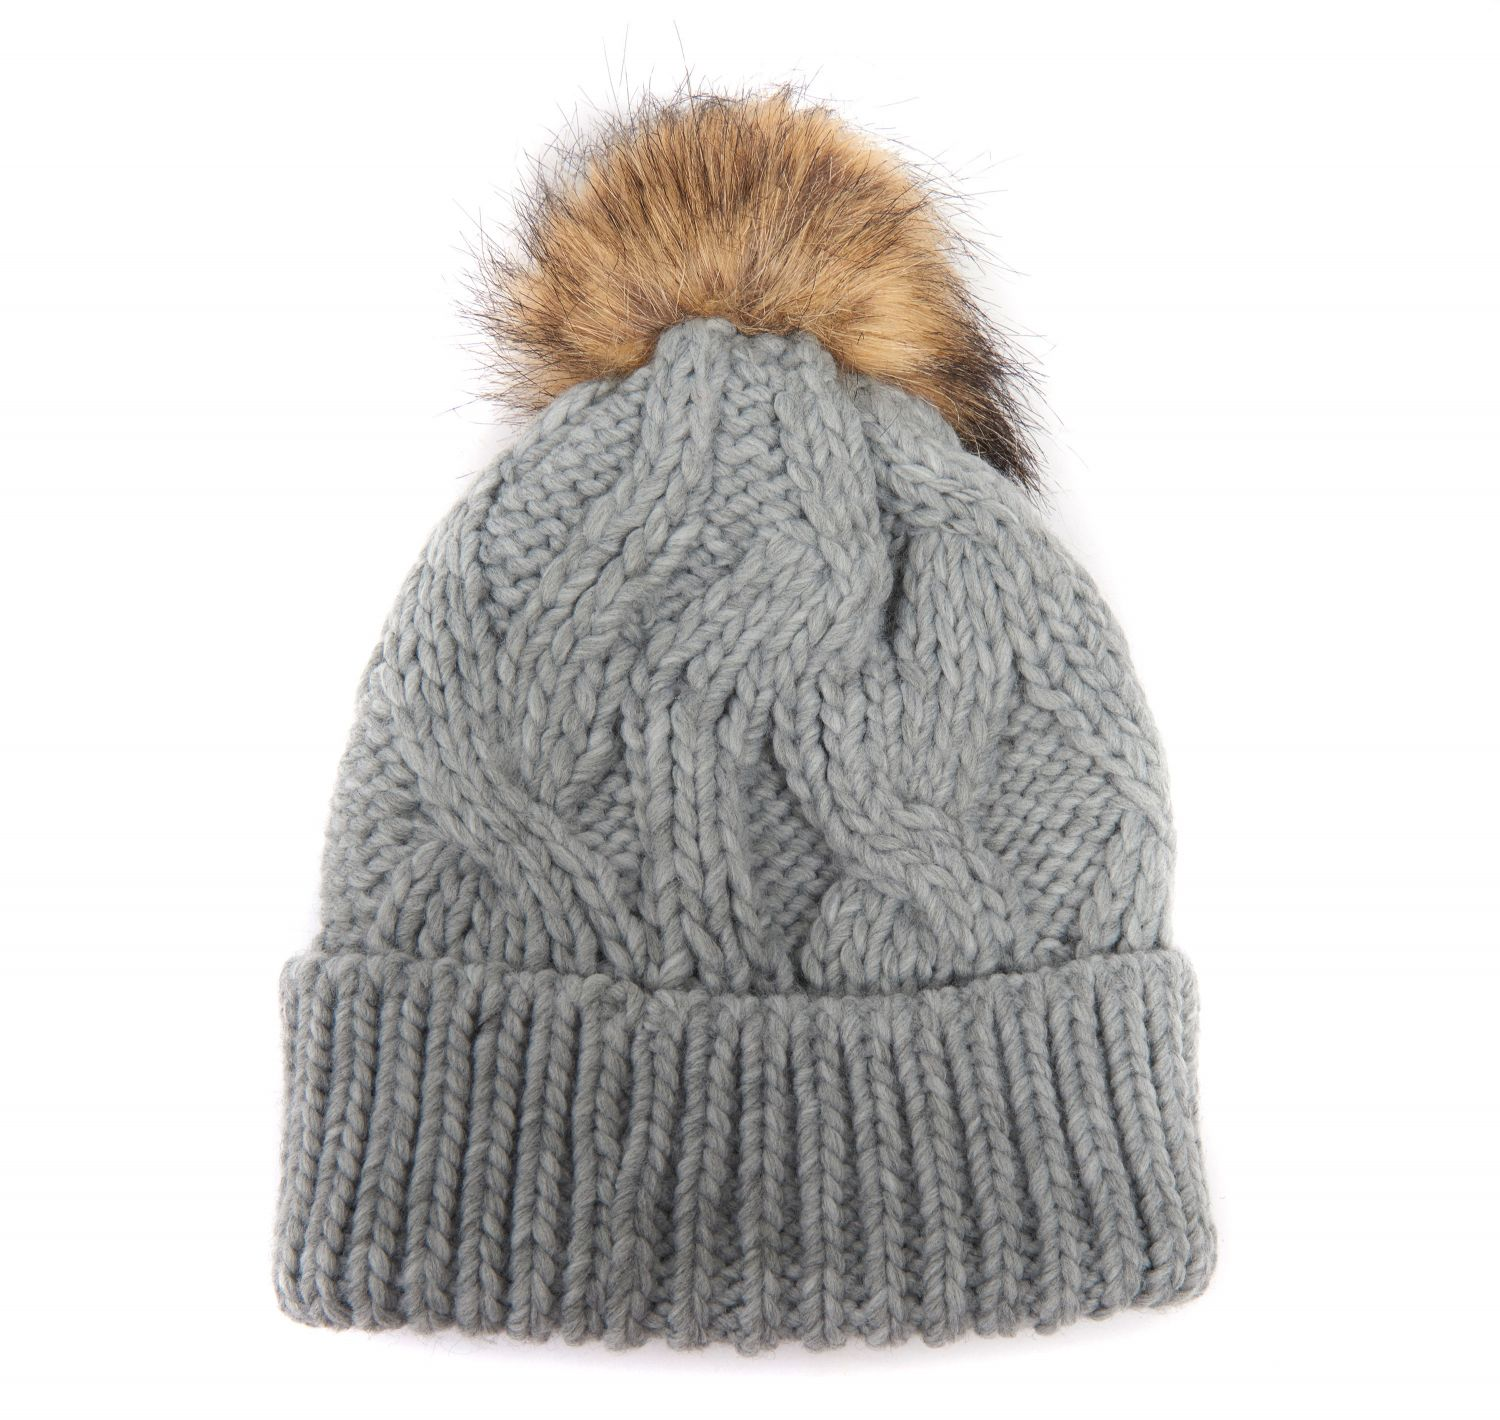 5ac8bca55d1108 Barbour Ashridge Beanie. Skip to the beginning of the images gallery